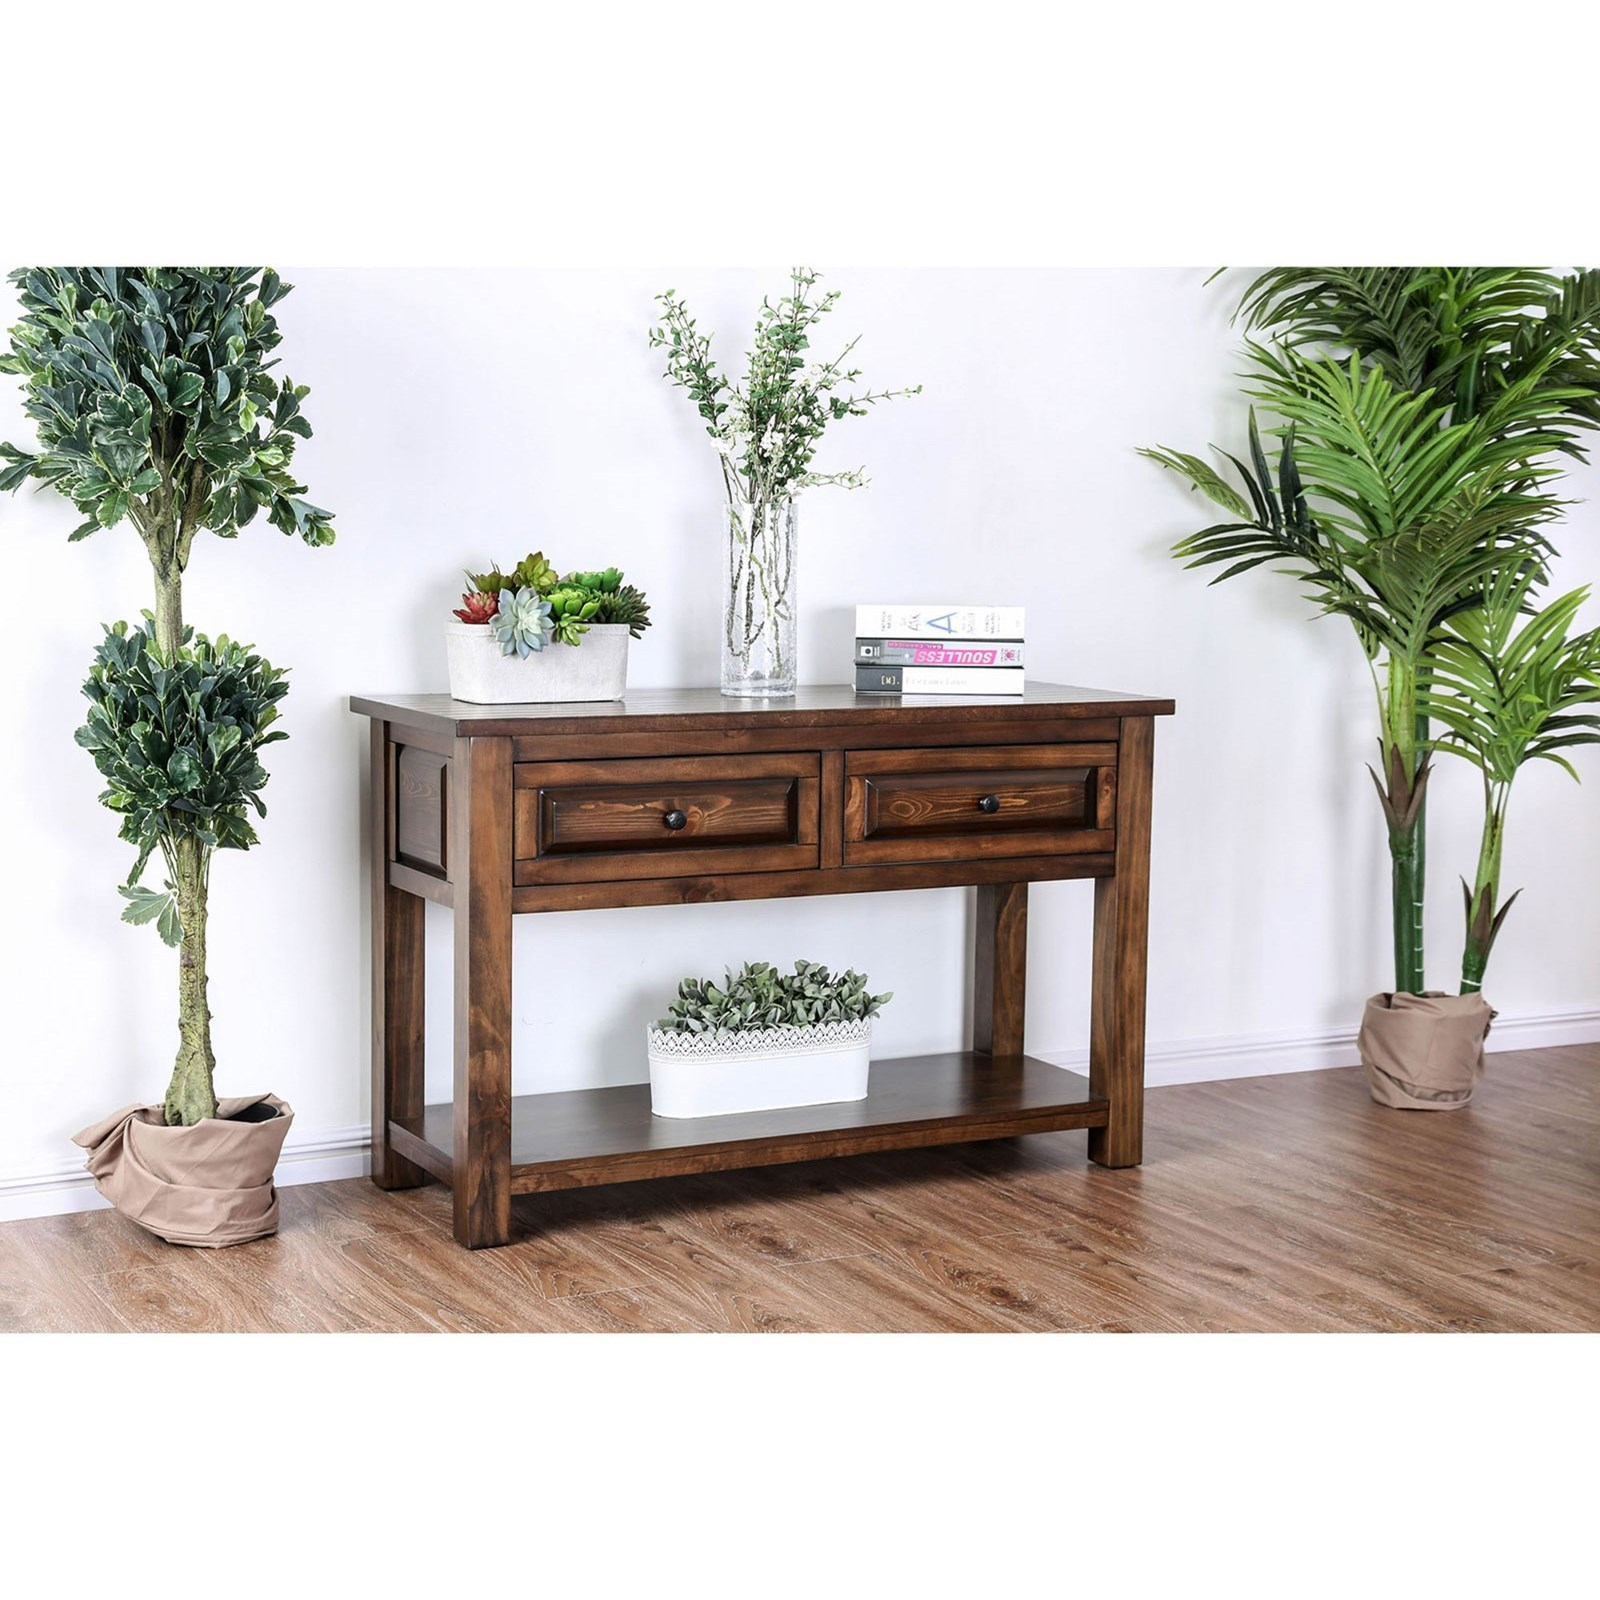 Annabel Sofa Table at Household Furniture